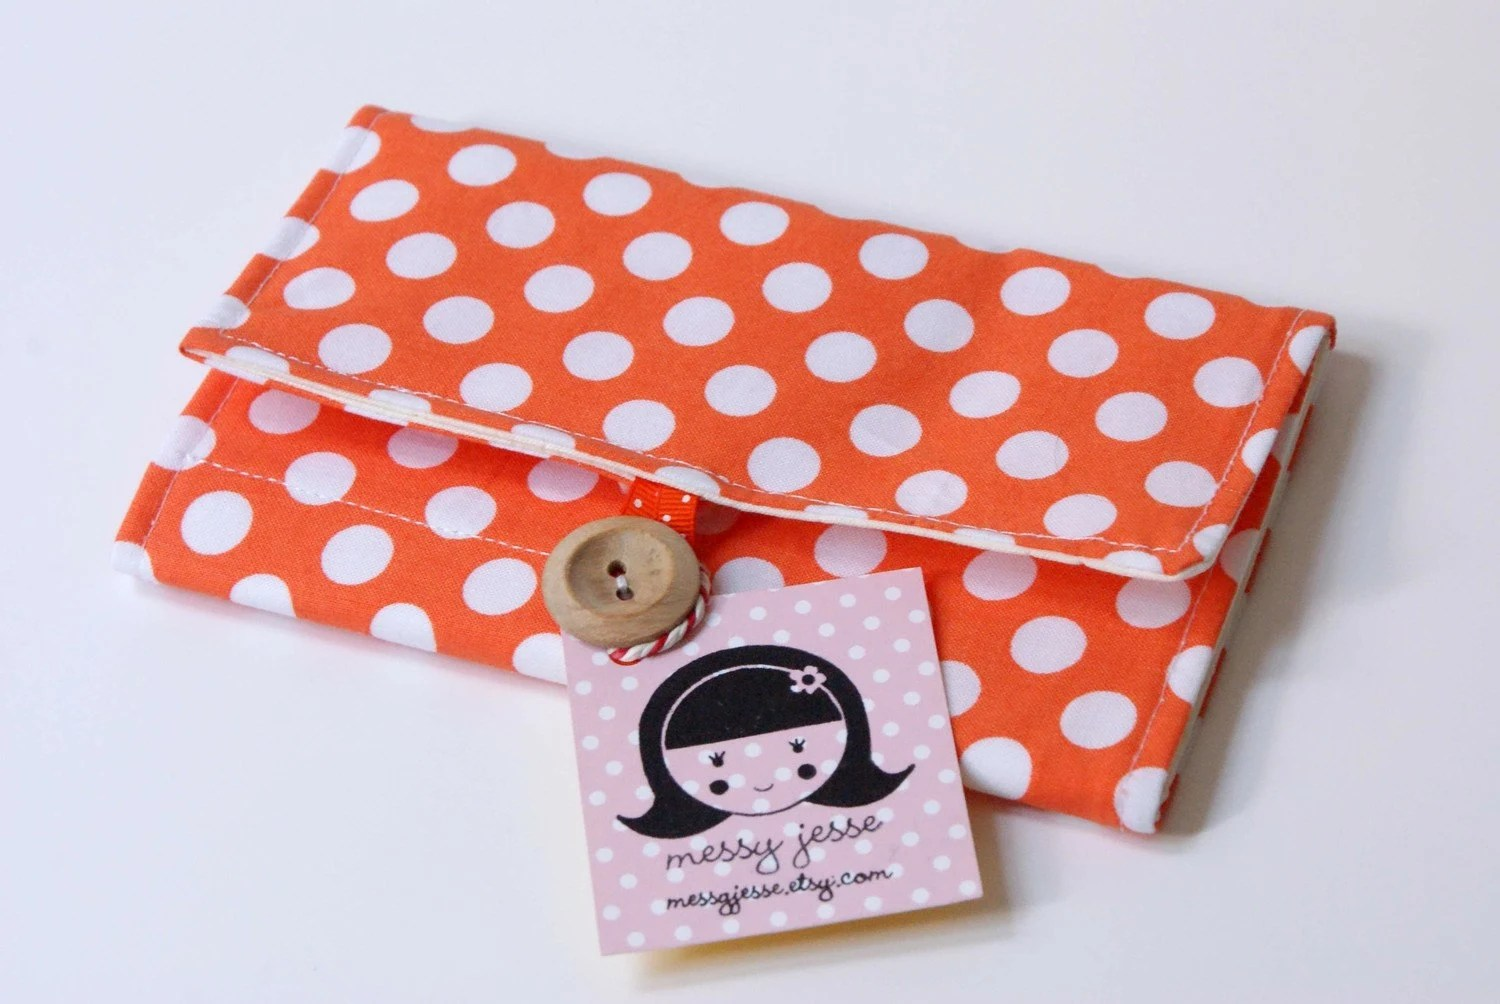 Cozy Crochet Hook Organizer, Citrus Orange Polka Dot